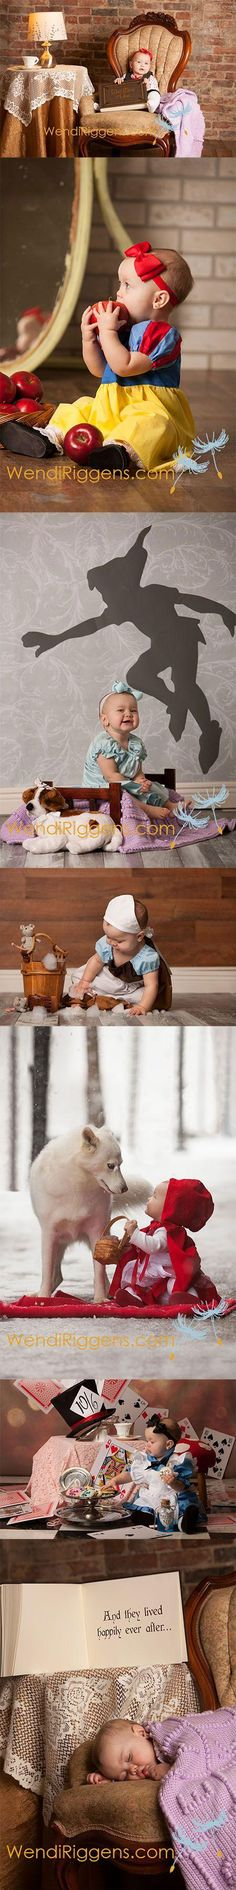 I have to do this with my baby girl! What an adorable disney baby photo shoot idea! At first, she's reading the fairytale book then it shows her in each character for each one! Last picture shows her asleep after all of her adventure! So cute! So Cute Baby, Baby Love, Cute Kids, Cute Babies, Baby Kids, Baby Pictures, Cute Pictures, Nerd, Princess Photo